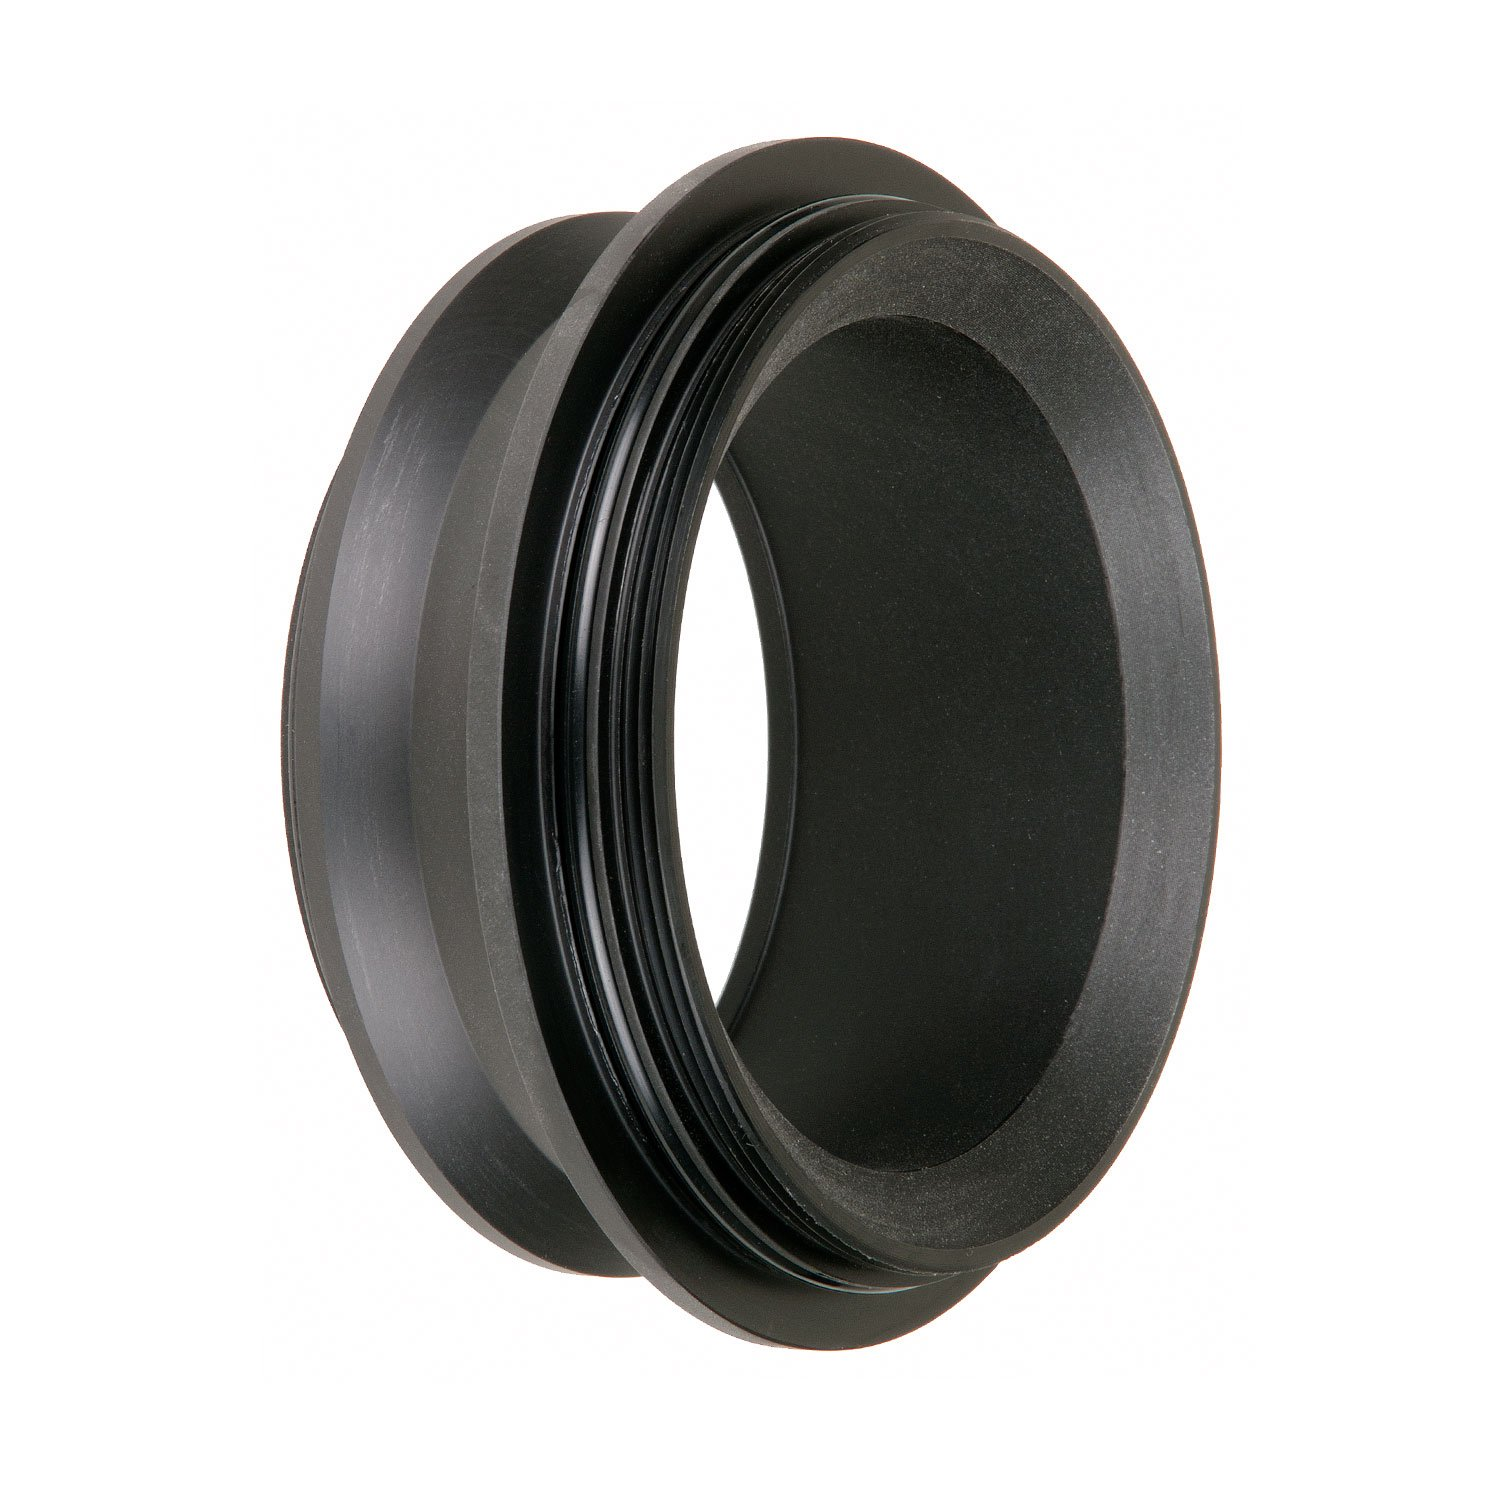 """Ikelite Standard Zoom Port Body for using Lenses up to 3.4"""" with the Flat Assembly or 3.5"""" with the 8"""" Dome Port."""